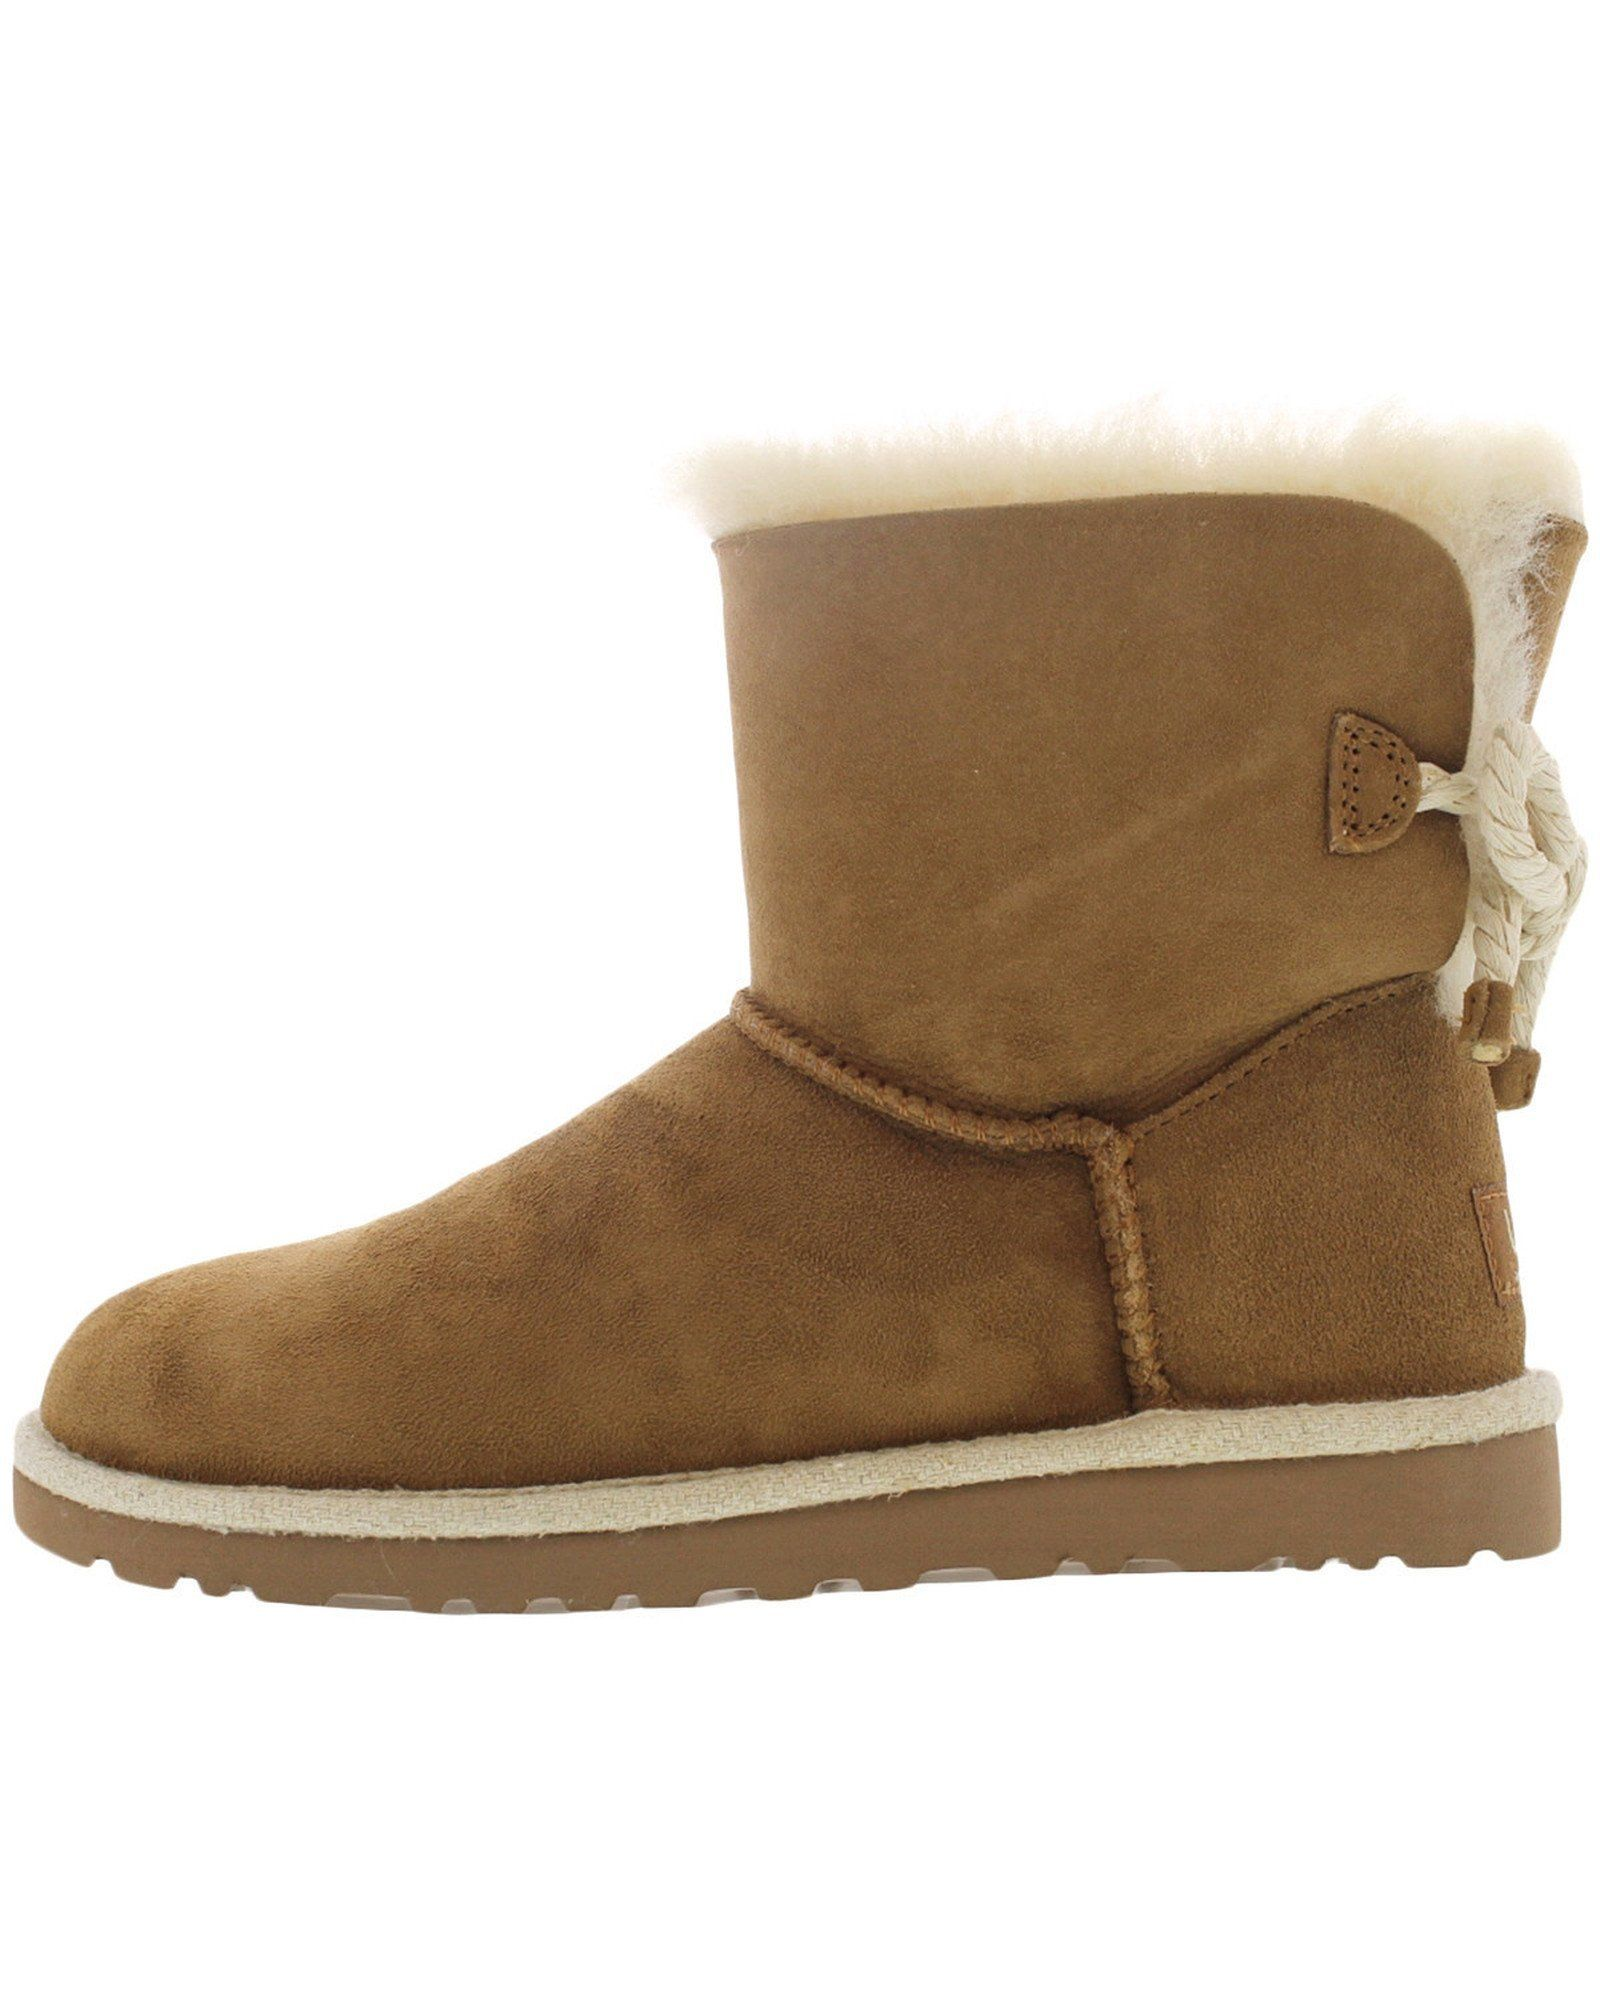 UGG - Women's Selene Suede Ankle Boots - Chestnut